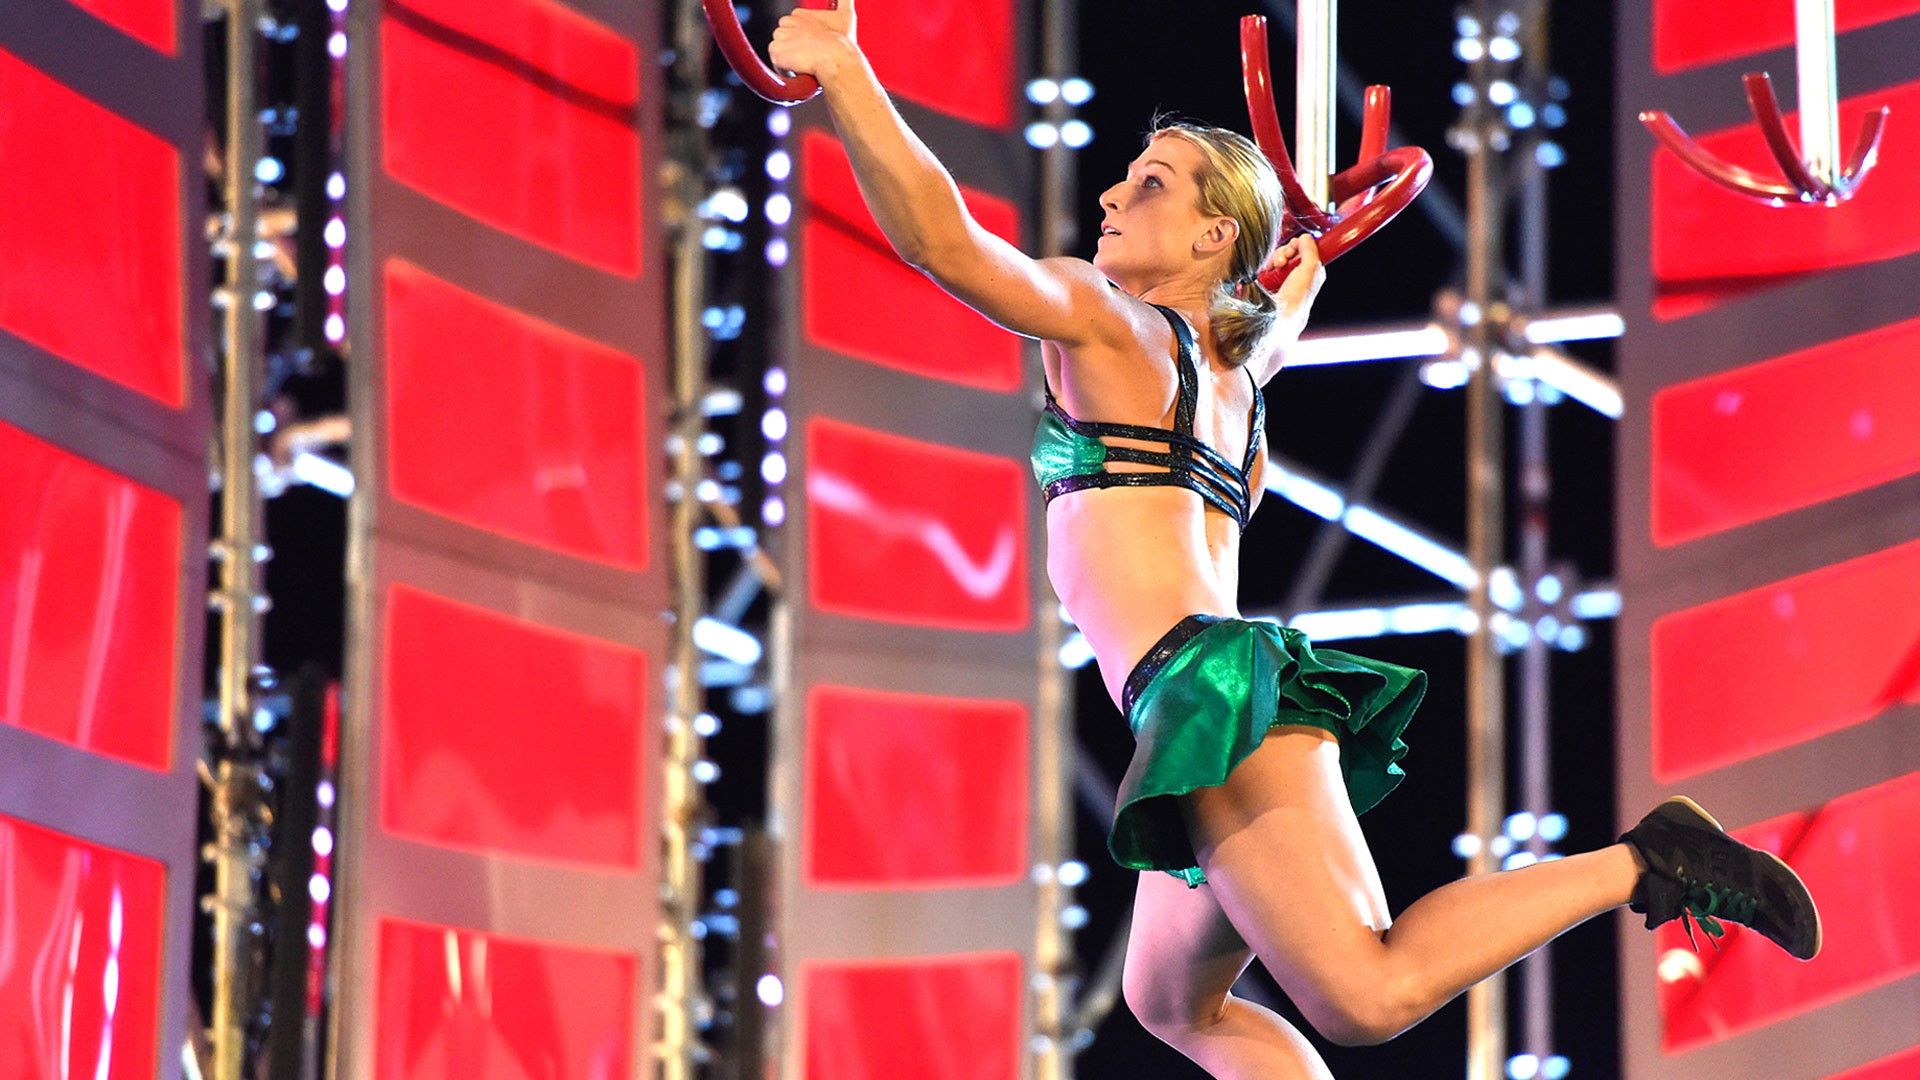 Watch American Ninja Warrior, Season 9 | Prime Video